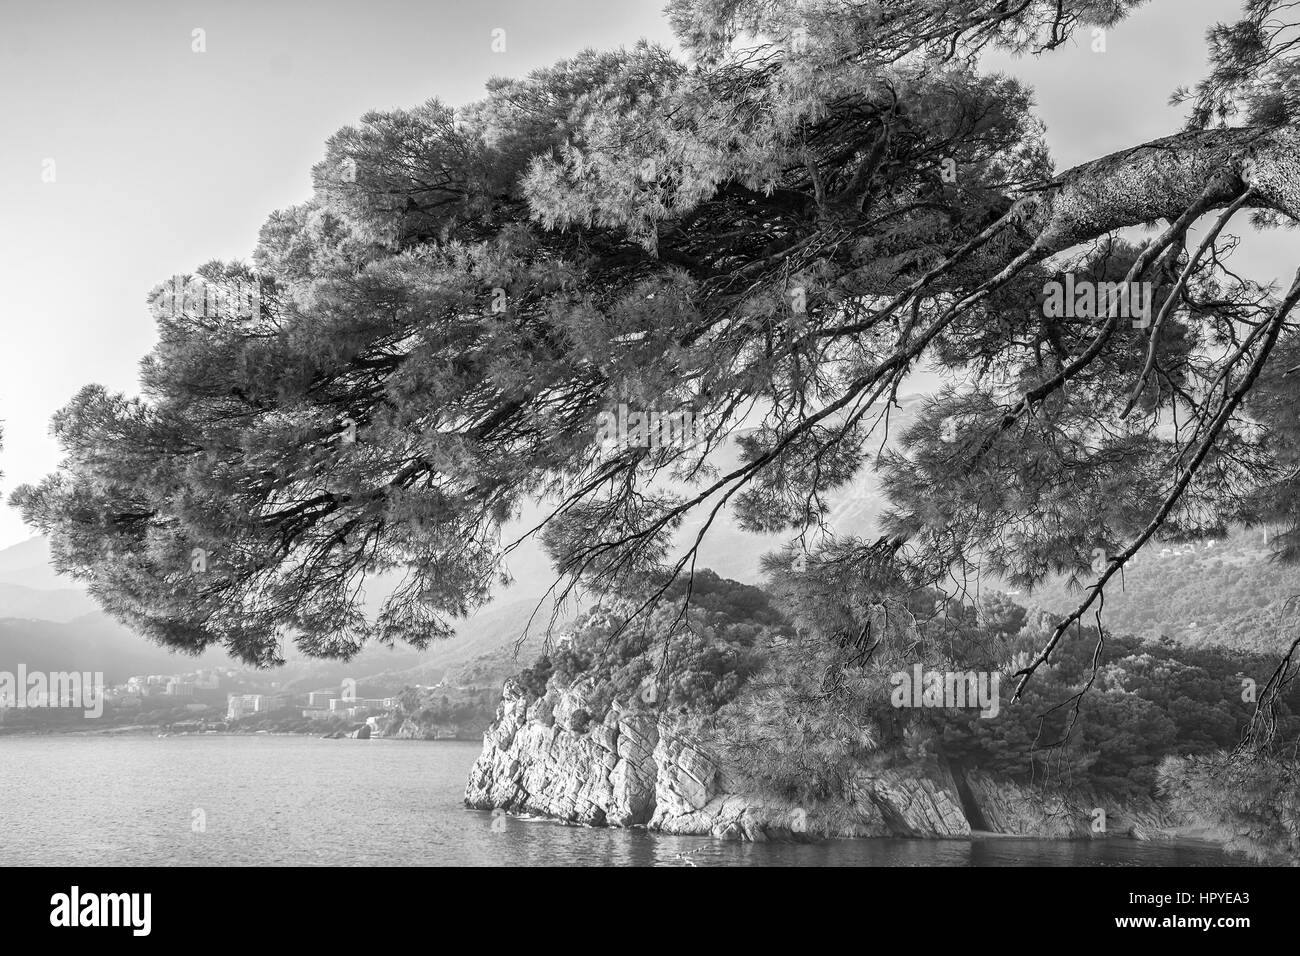 Sea view with rocky coast and pines. Vacation background. Black and white - Stock Image